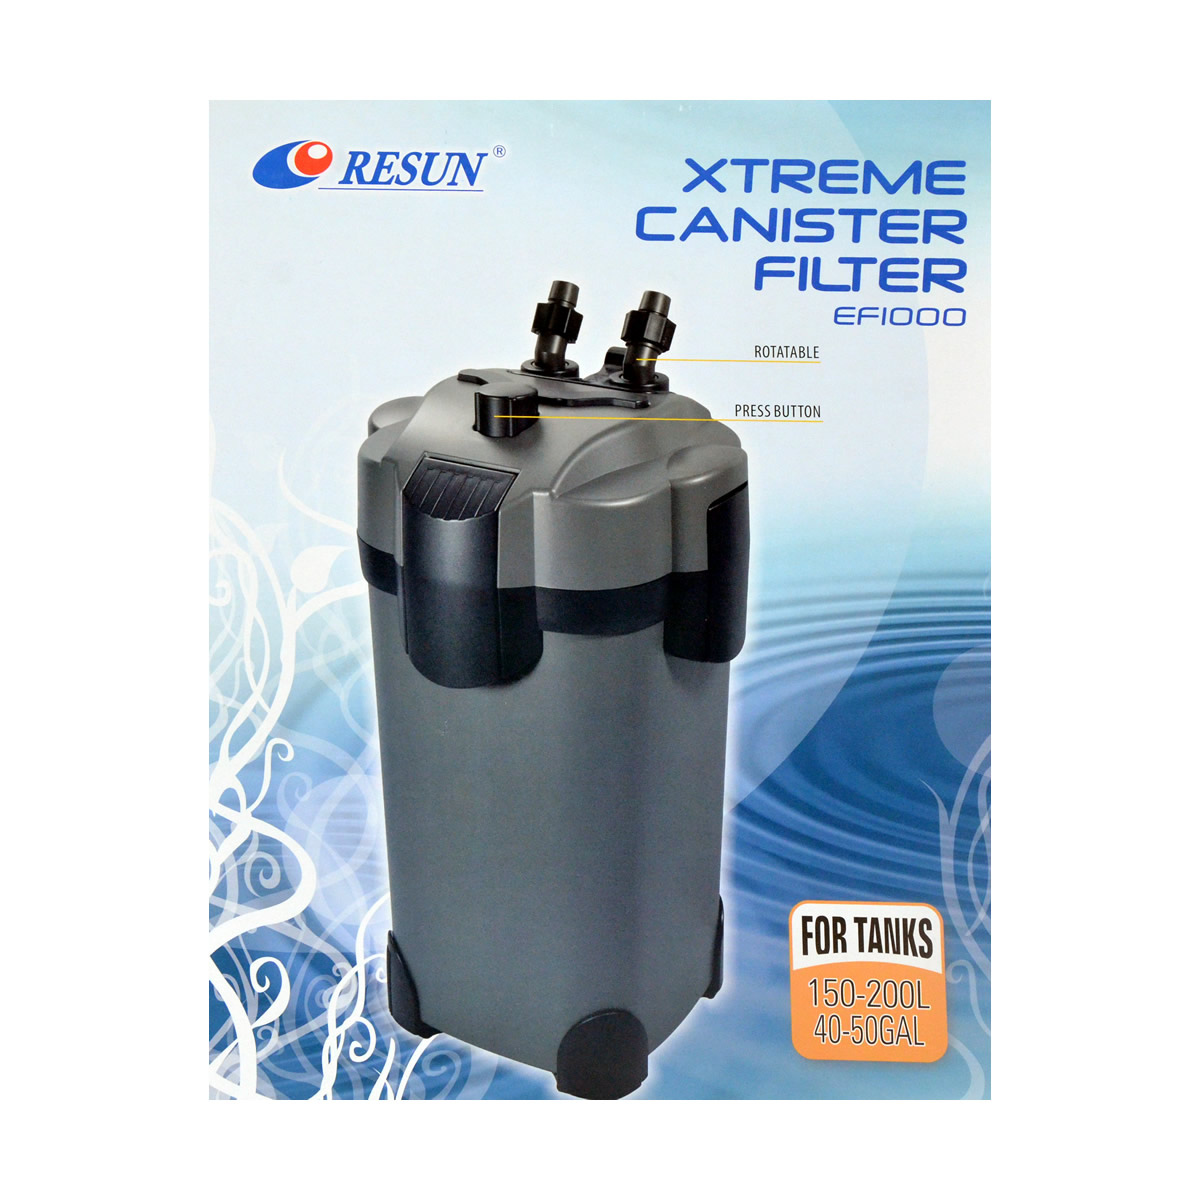 ReSun EF1000 Xtreme Canister Filter 19W 1000L/H 150-200L